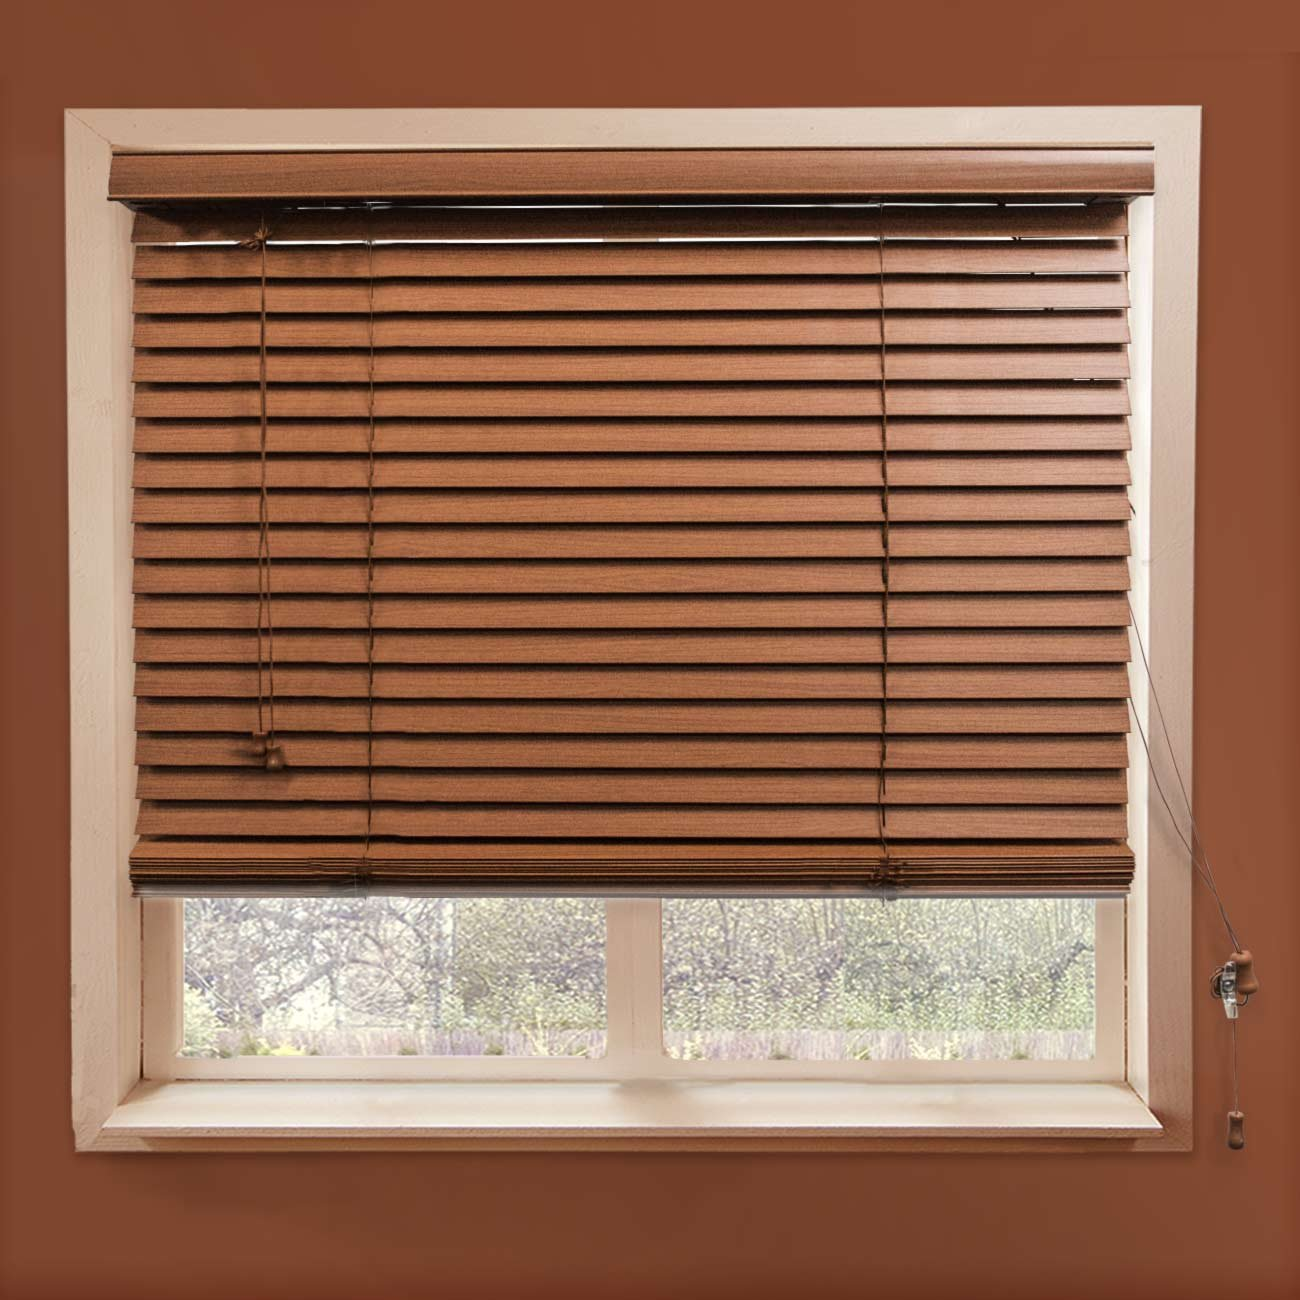 CHICOLOGY Faux Wood Blinds/window horizontal 2-inch venetian slat, Faux Wood, Variable Light Control - Simply Brown, 35'' W X 64'' H